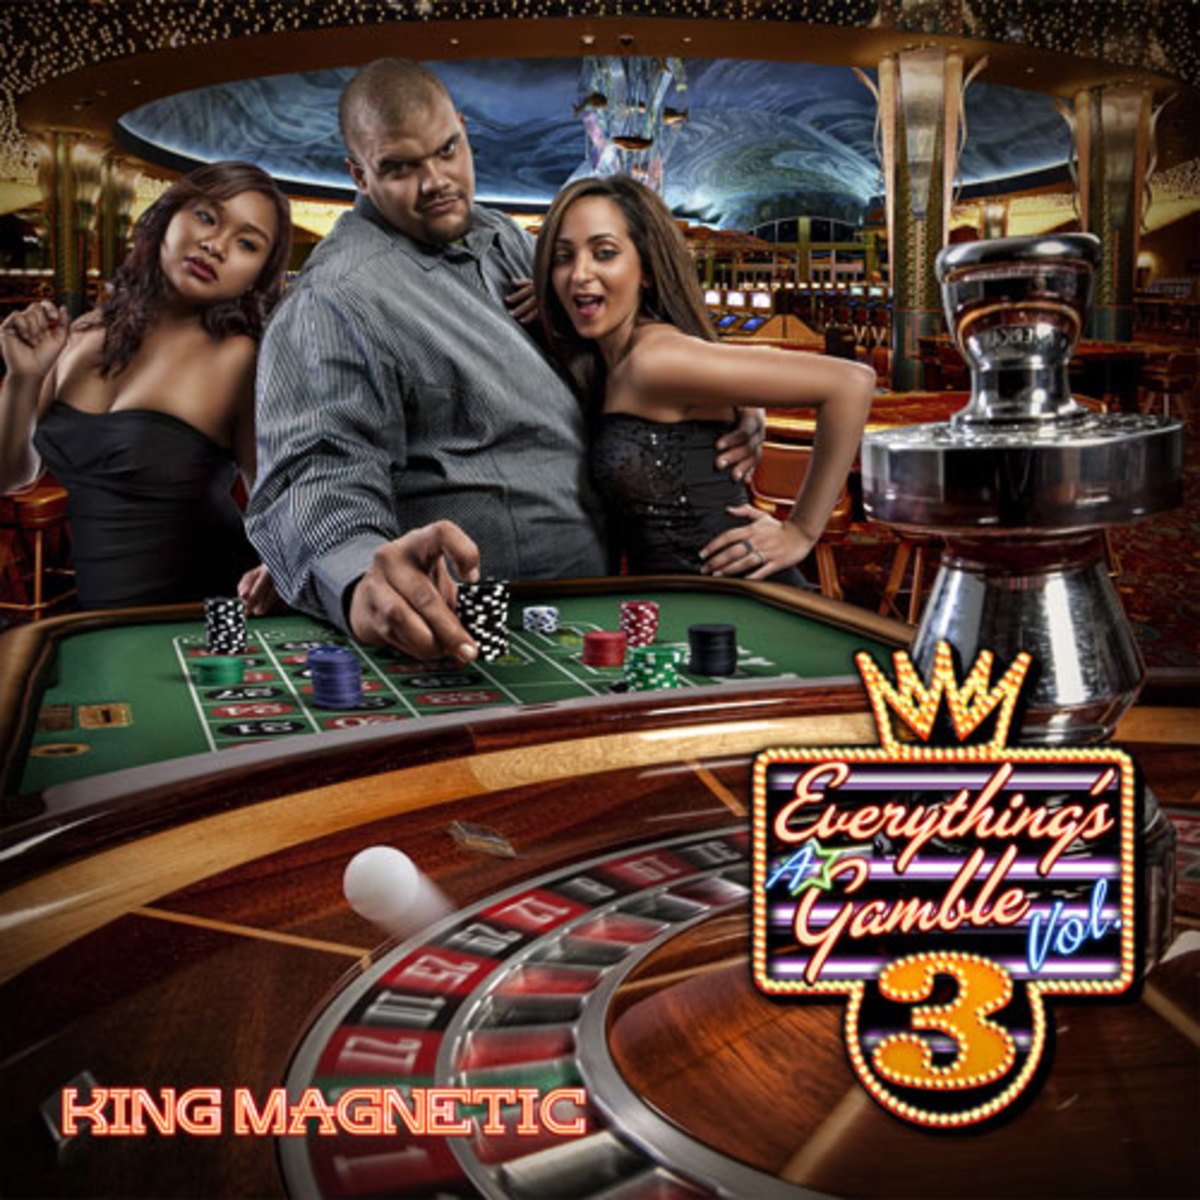 kingmag-gamble3.jpg